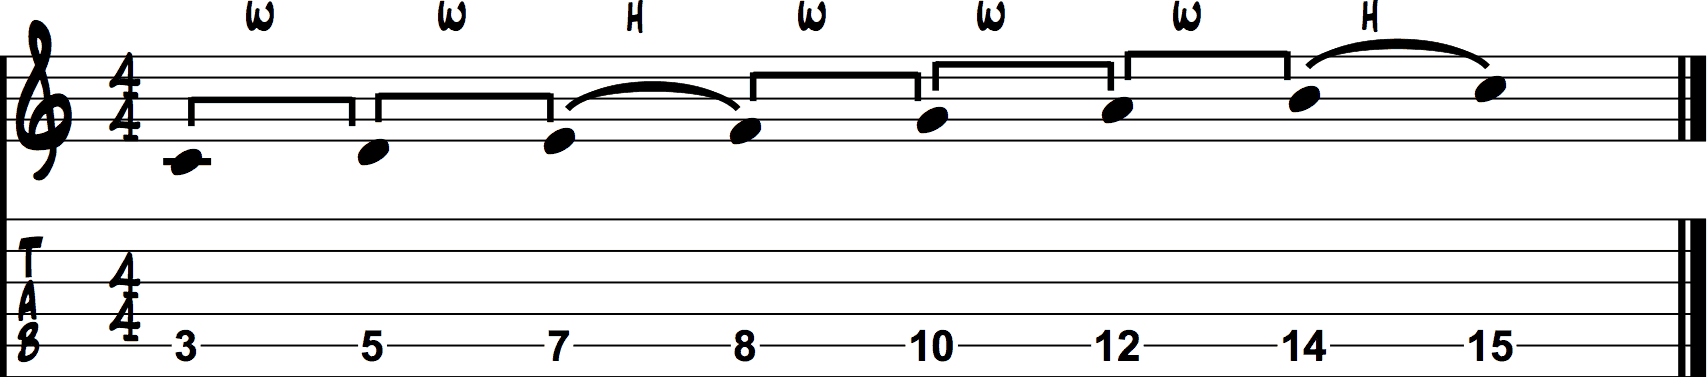 Guitar major scale example 2